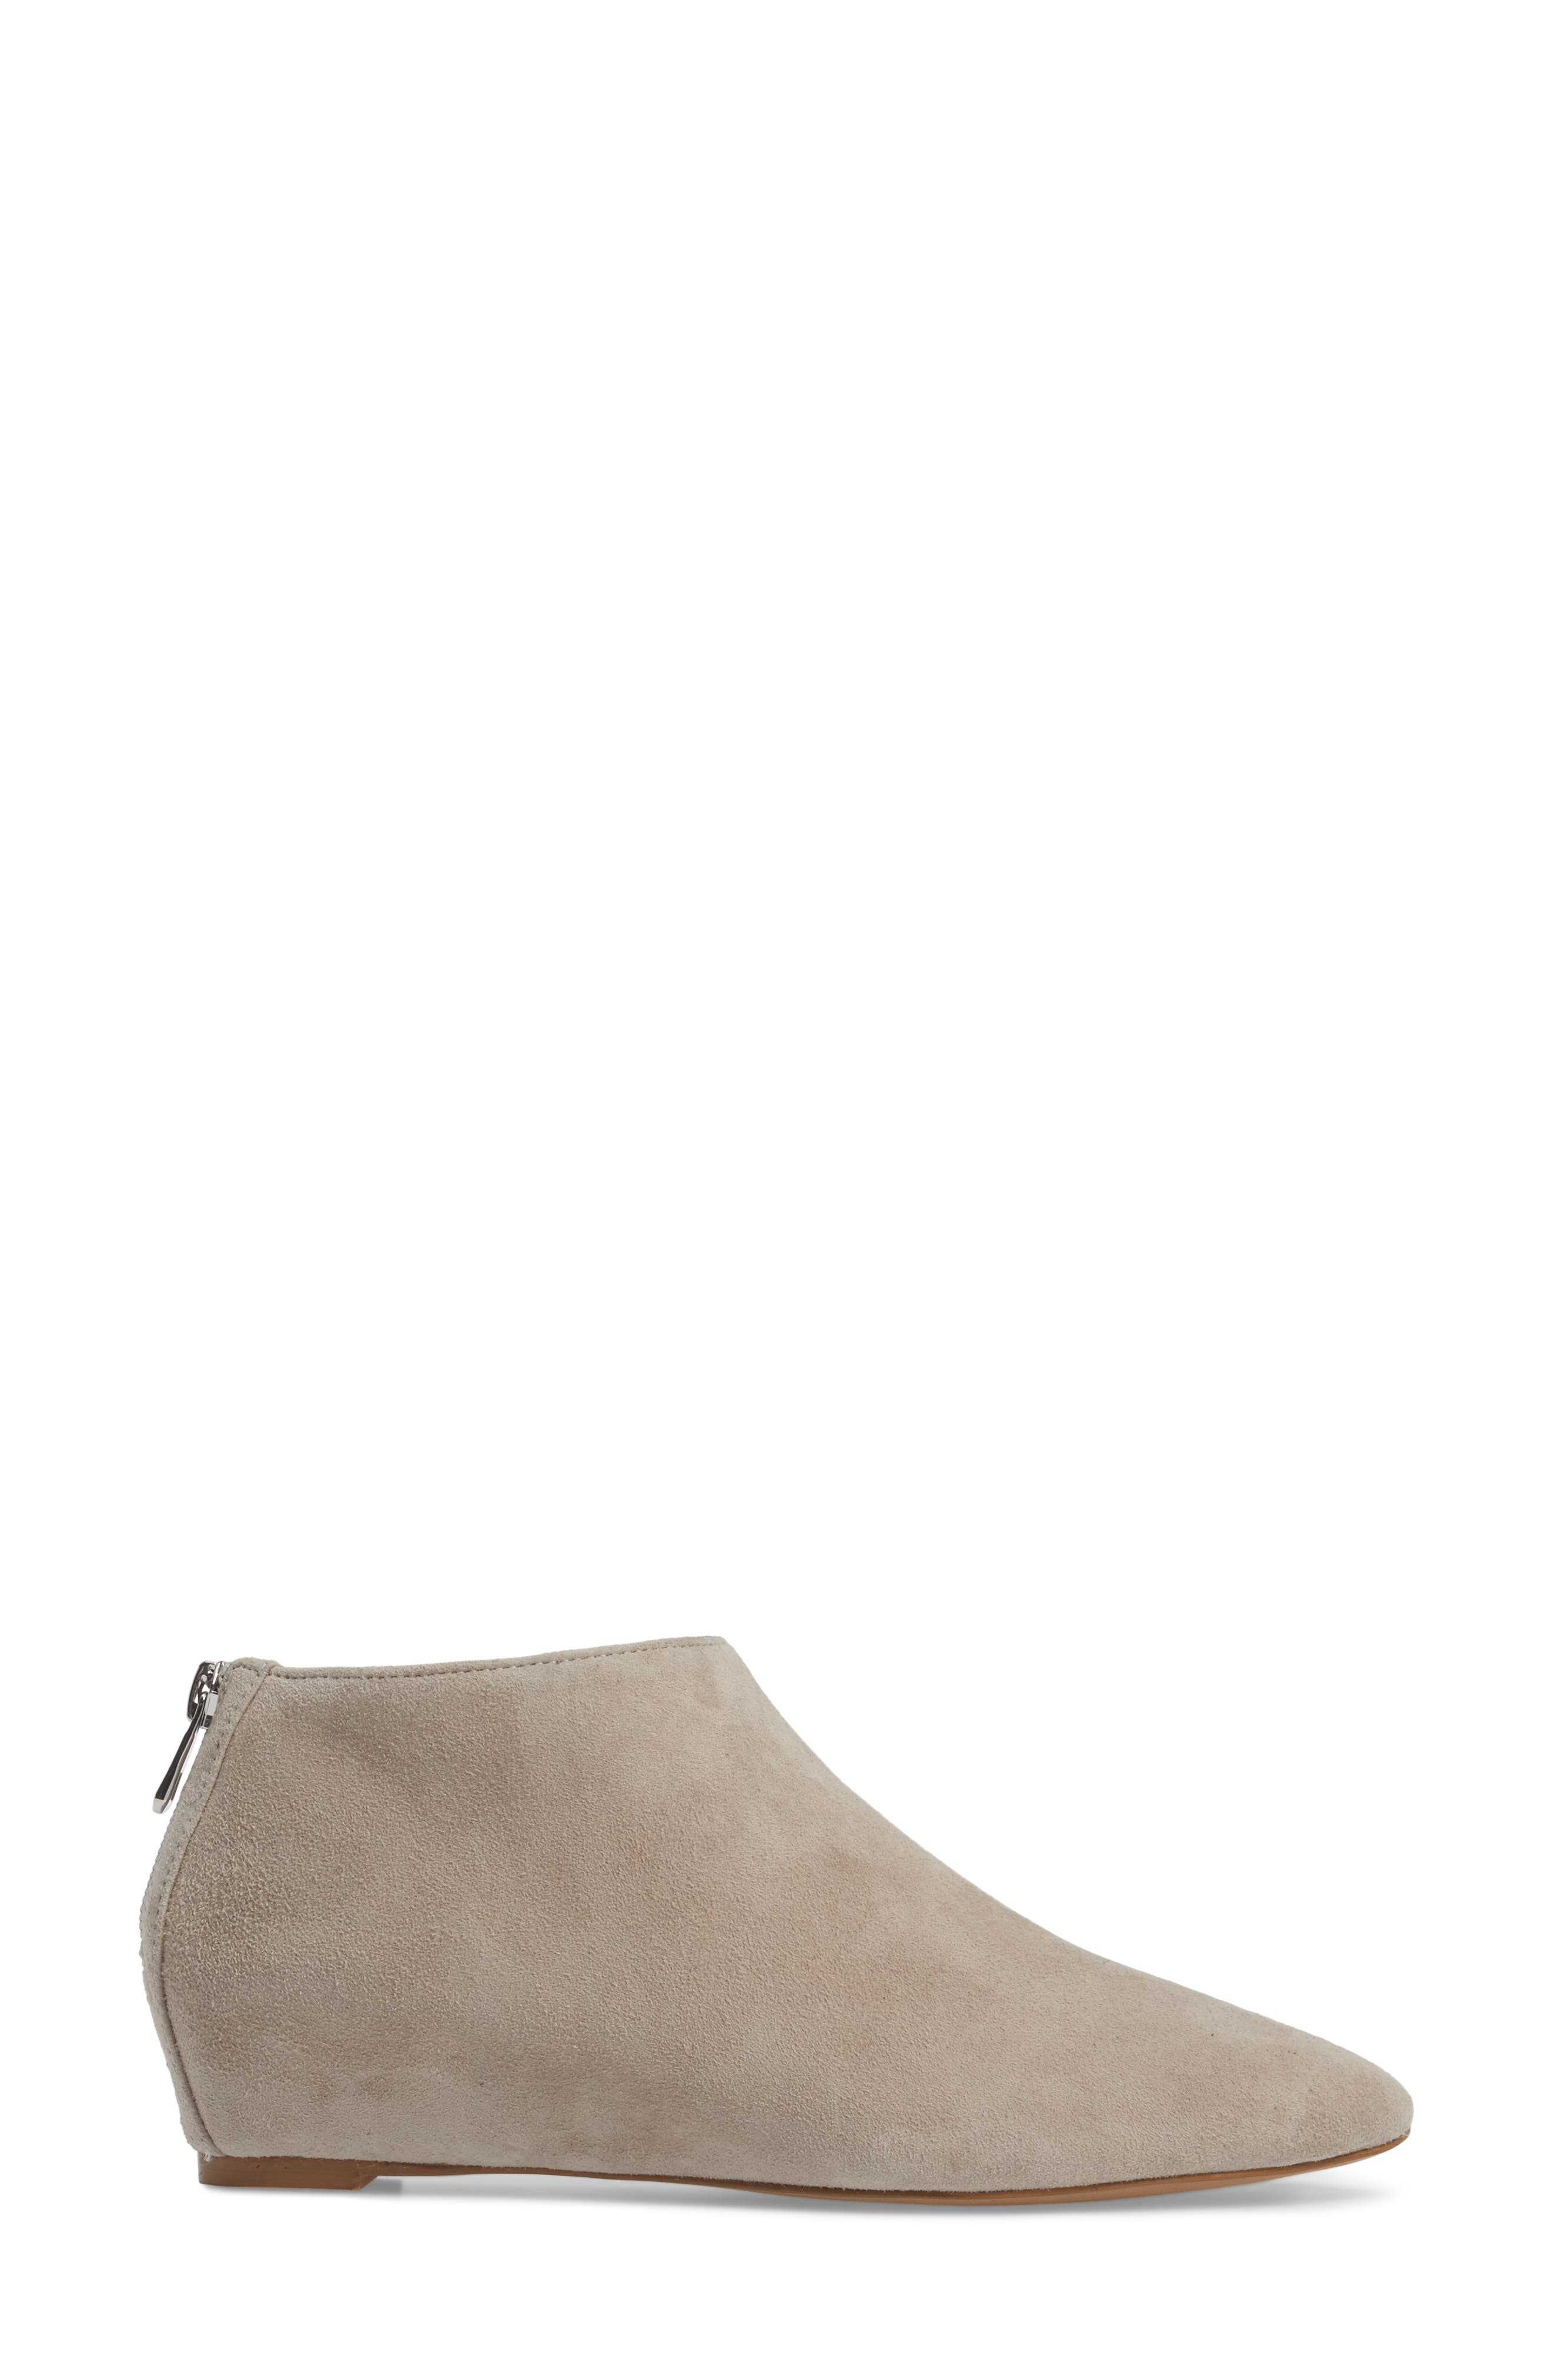 Aves Les Filles Beatrice Ankle Boot,                             Alternate thumbnail 12, color,